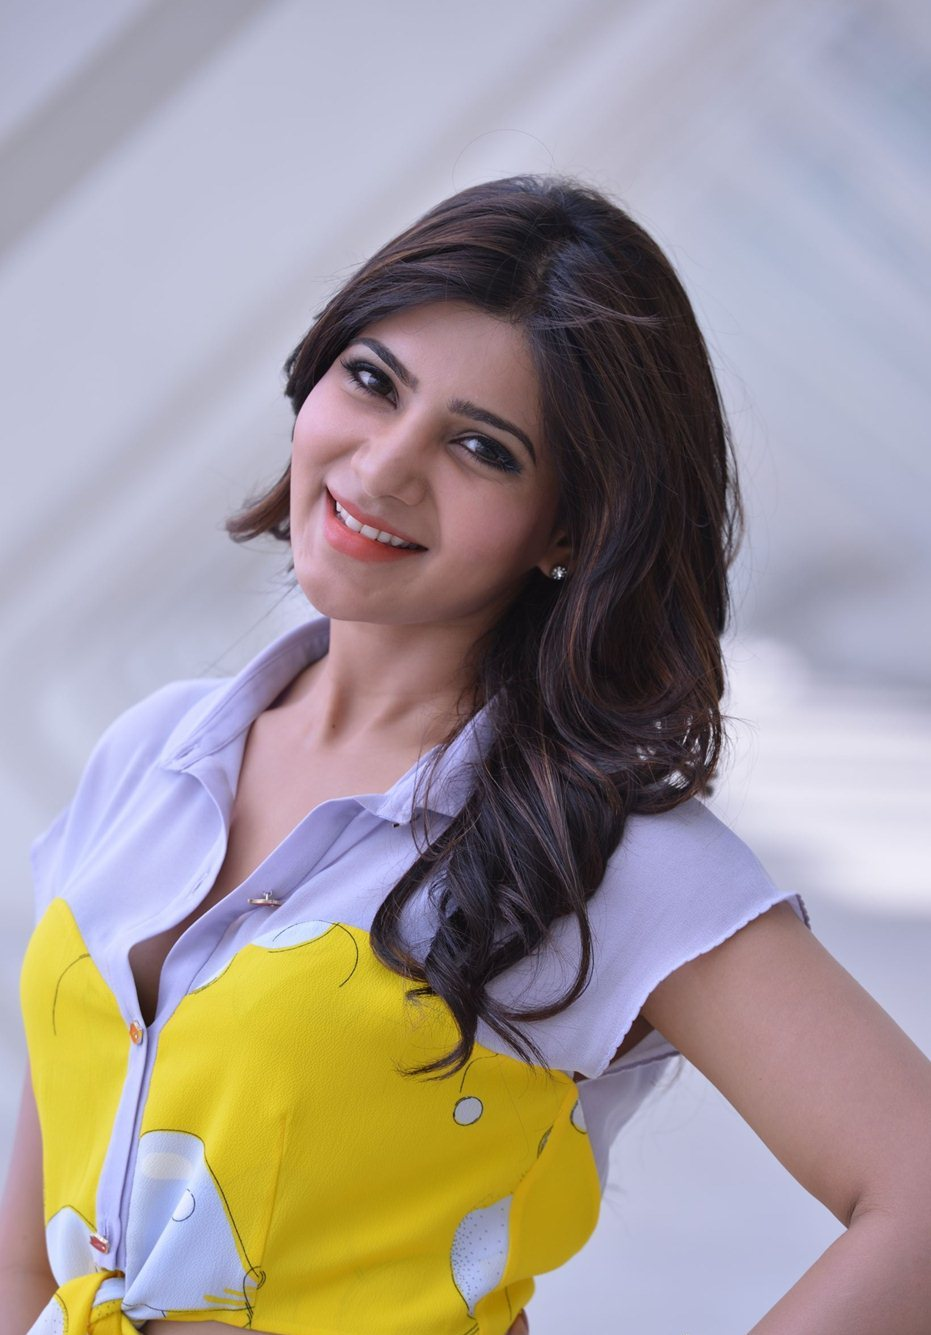 cute samantha hd wallpaper, images and photos free download